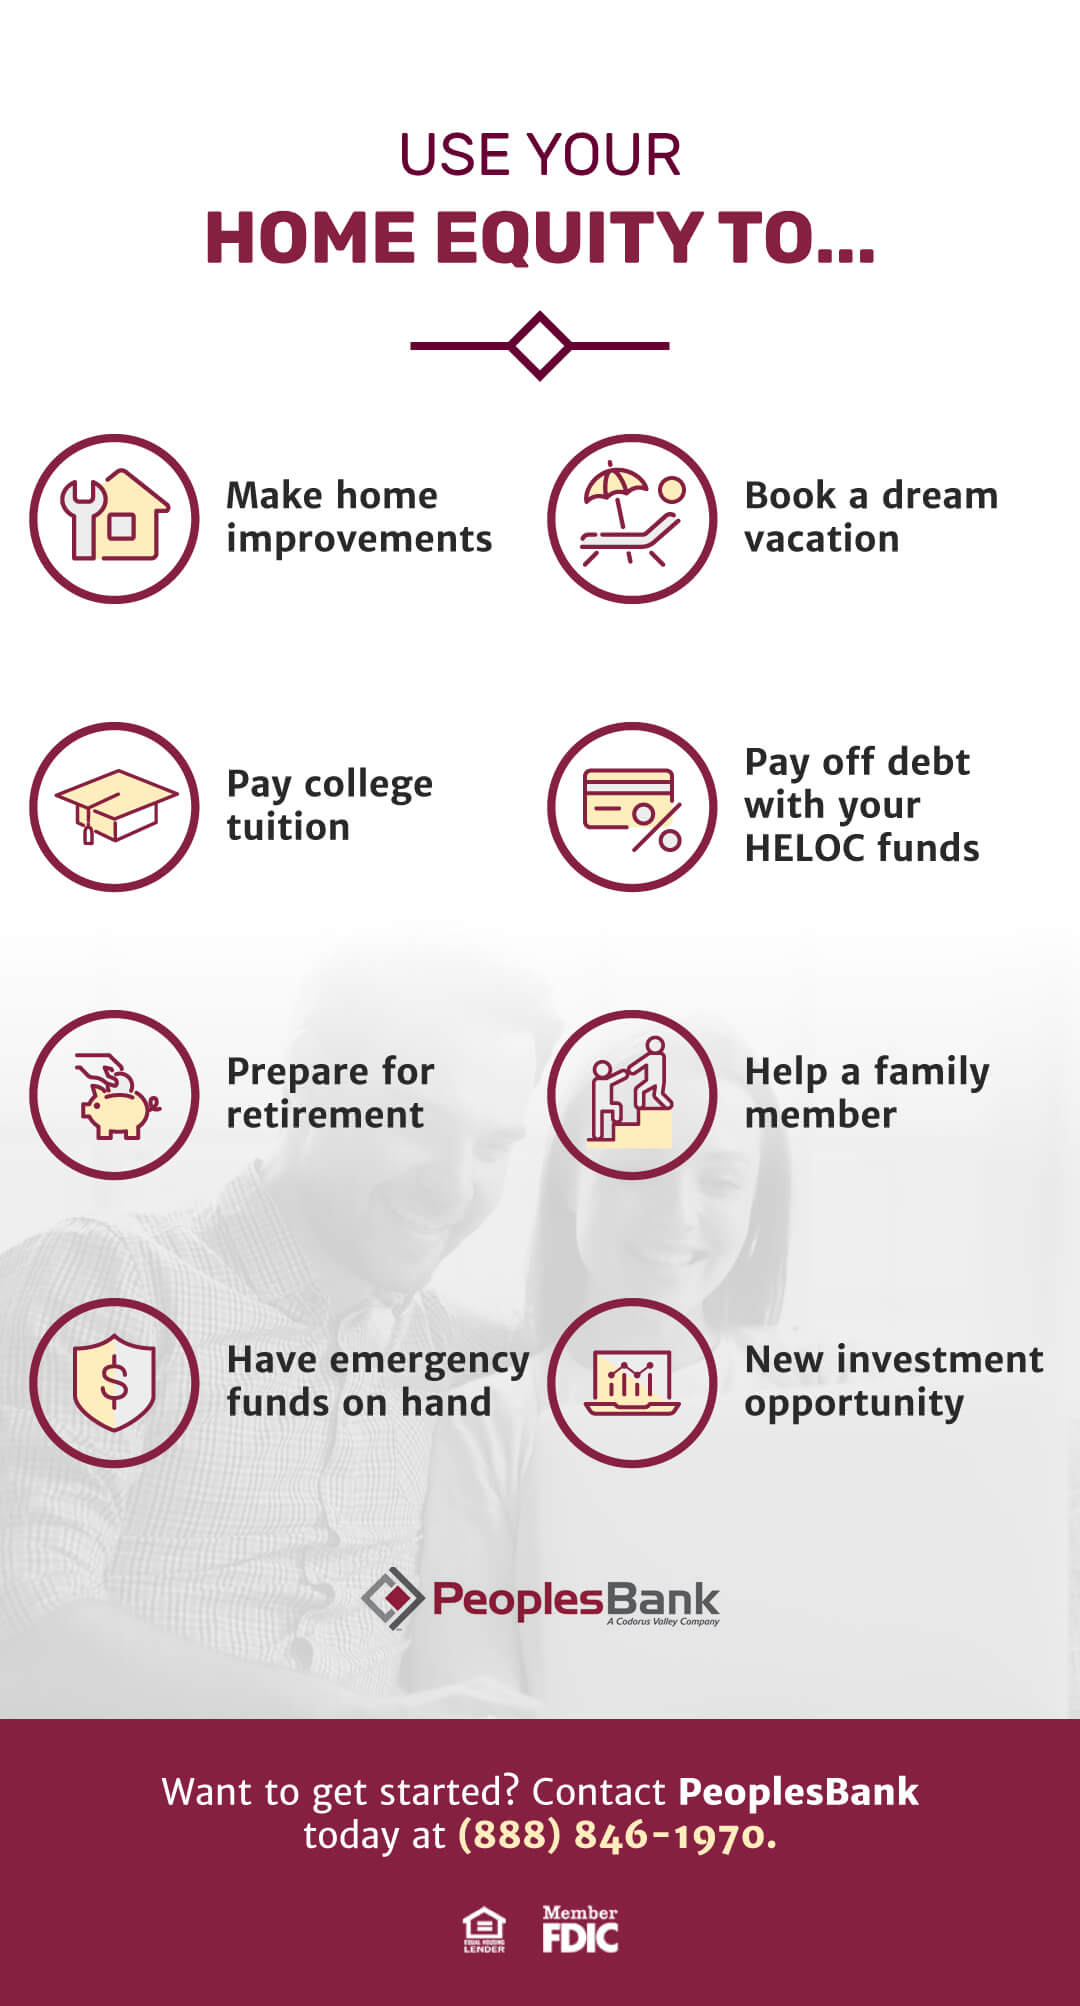 peoples-bank-mg-use-your-home-equity-to-rev01.jpg